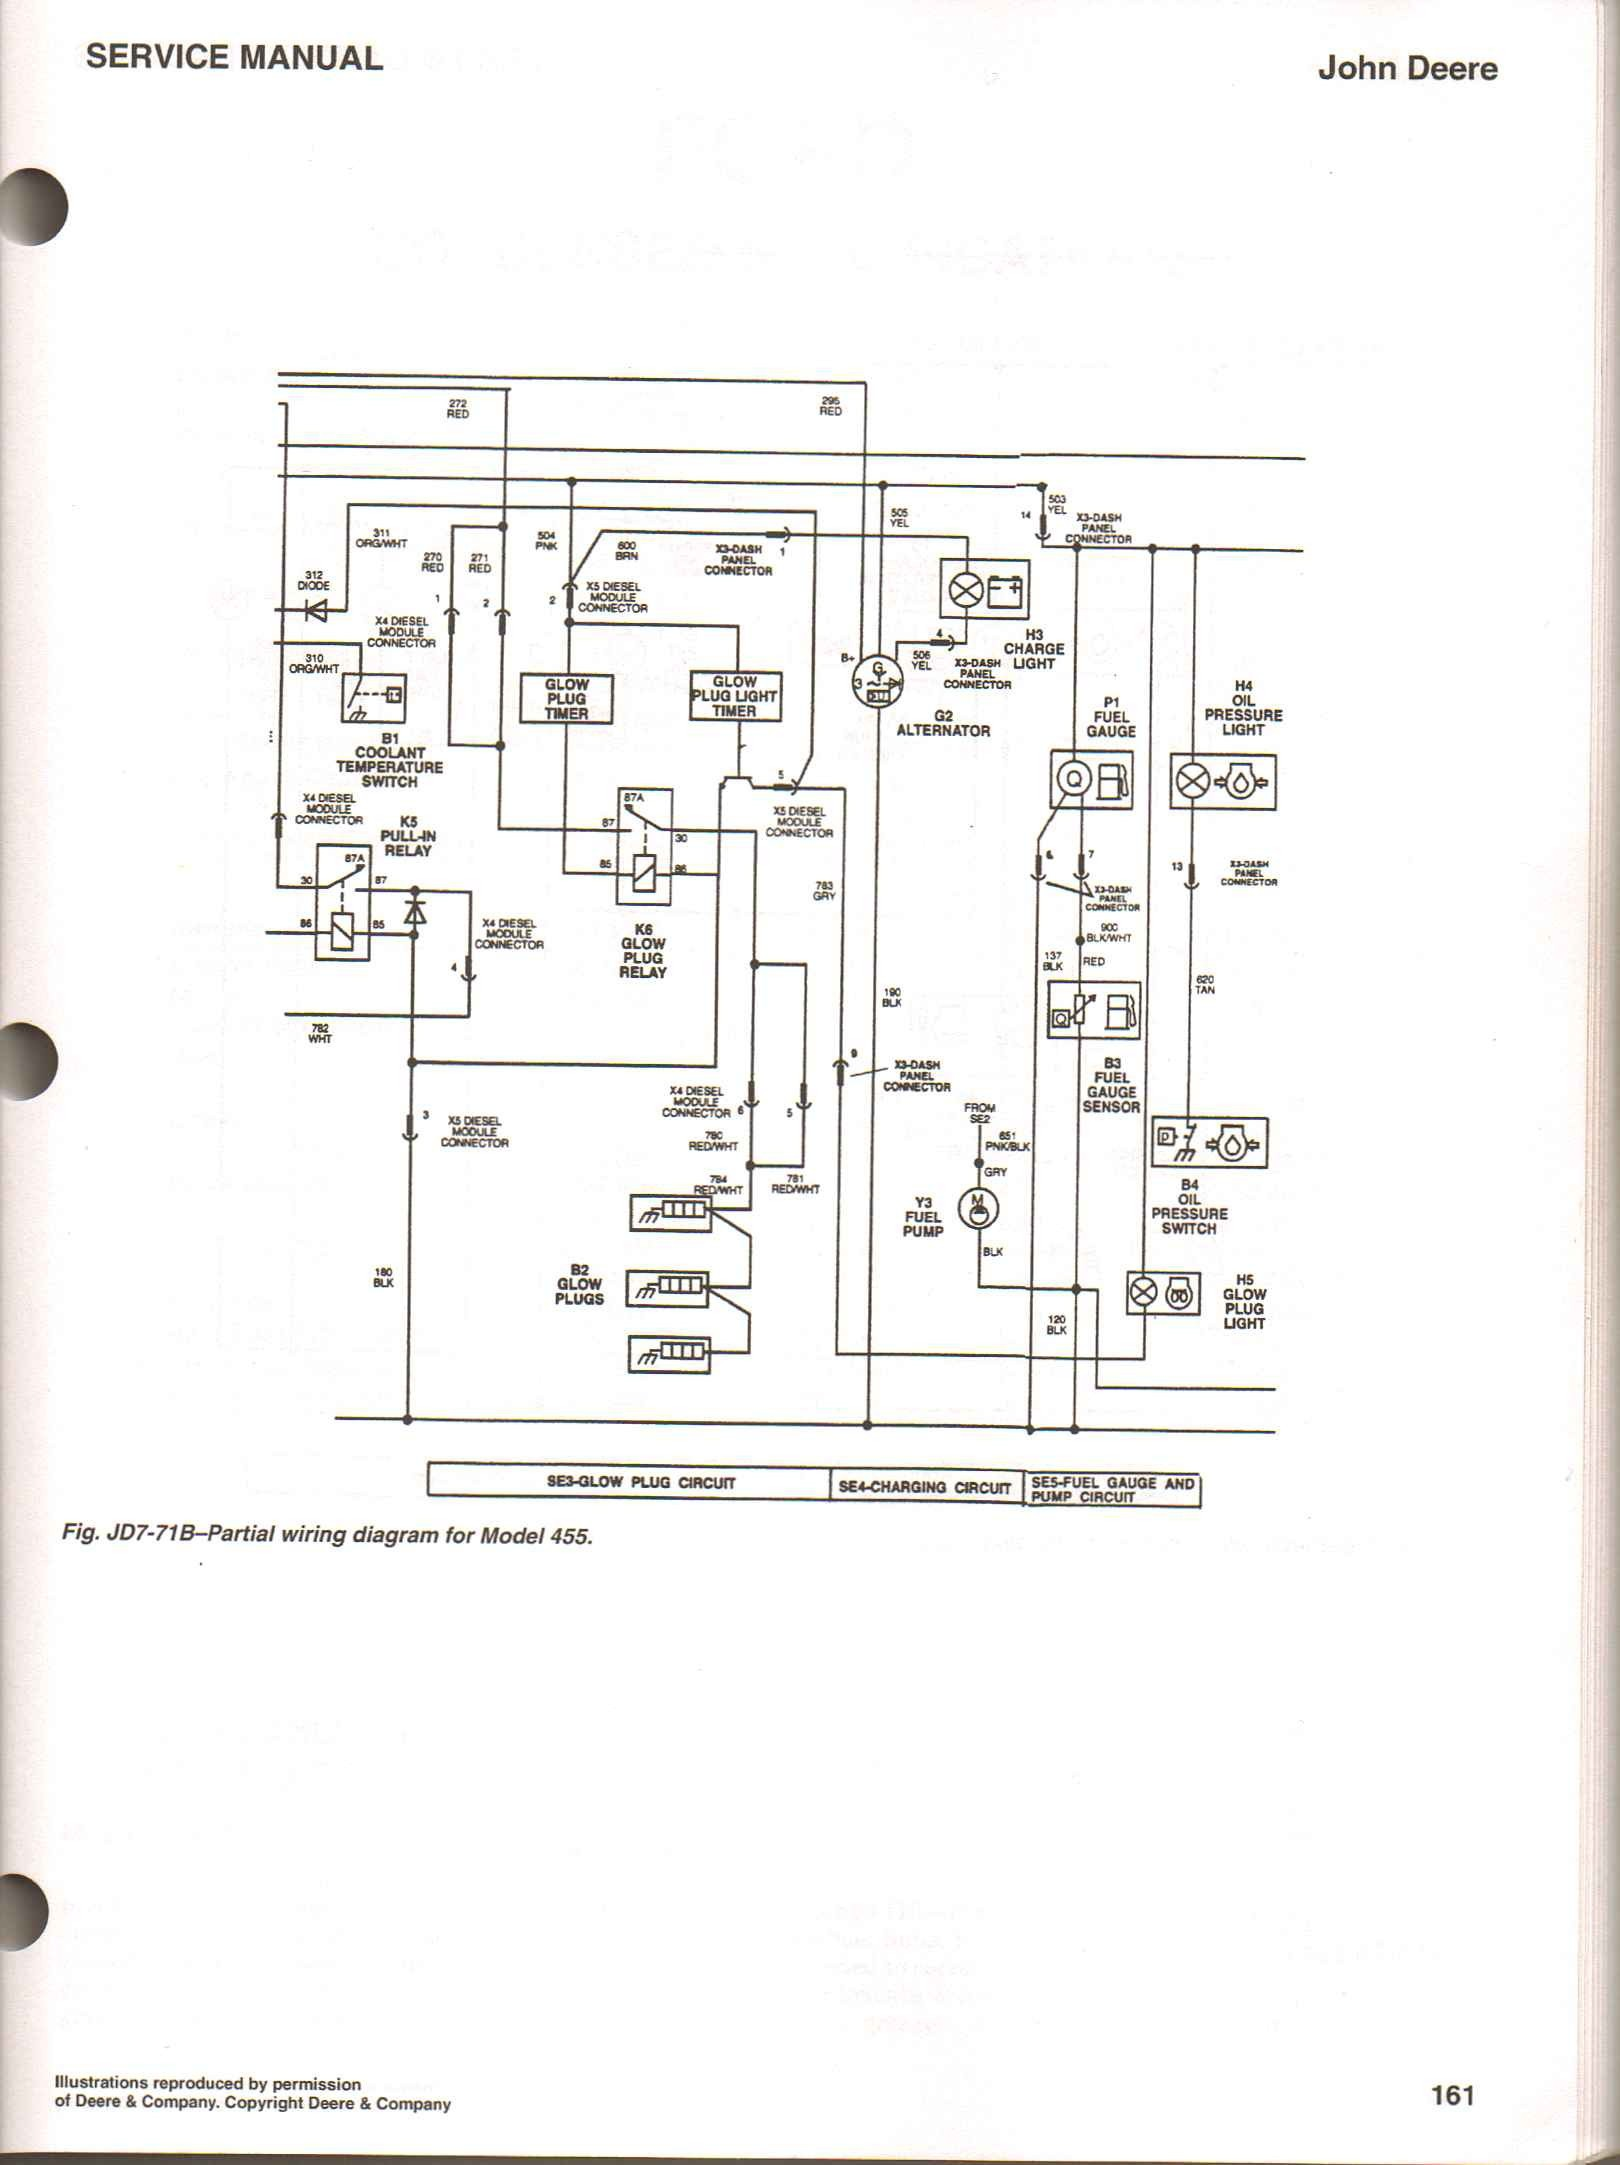 gage rampampr spreadsheet of john deere 4020 wiring diagram fuel gauge or gage rampr spreadsheet